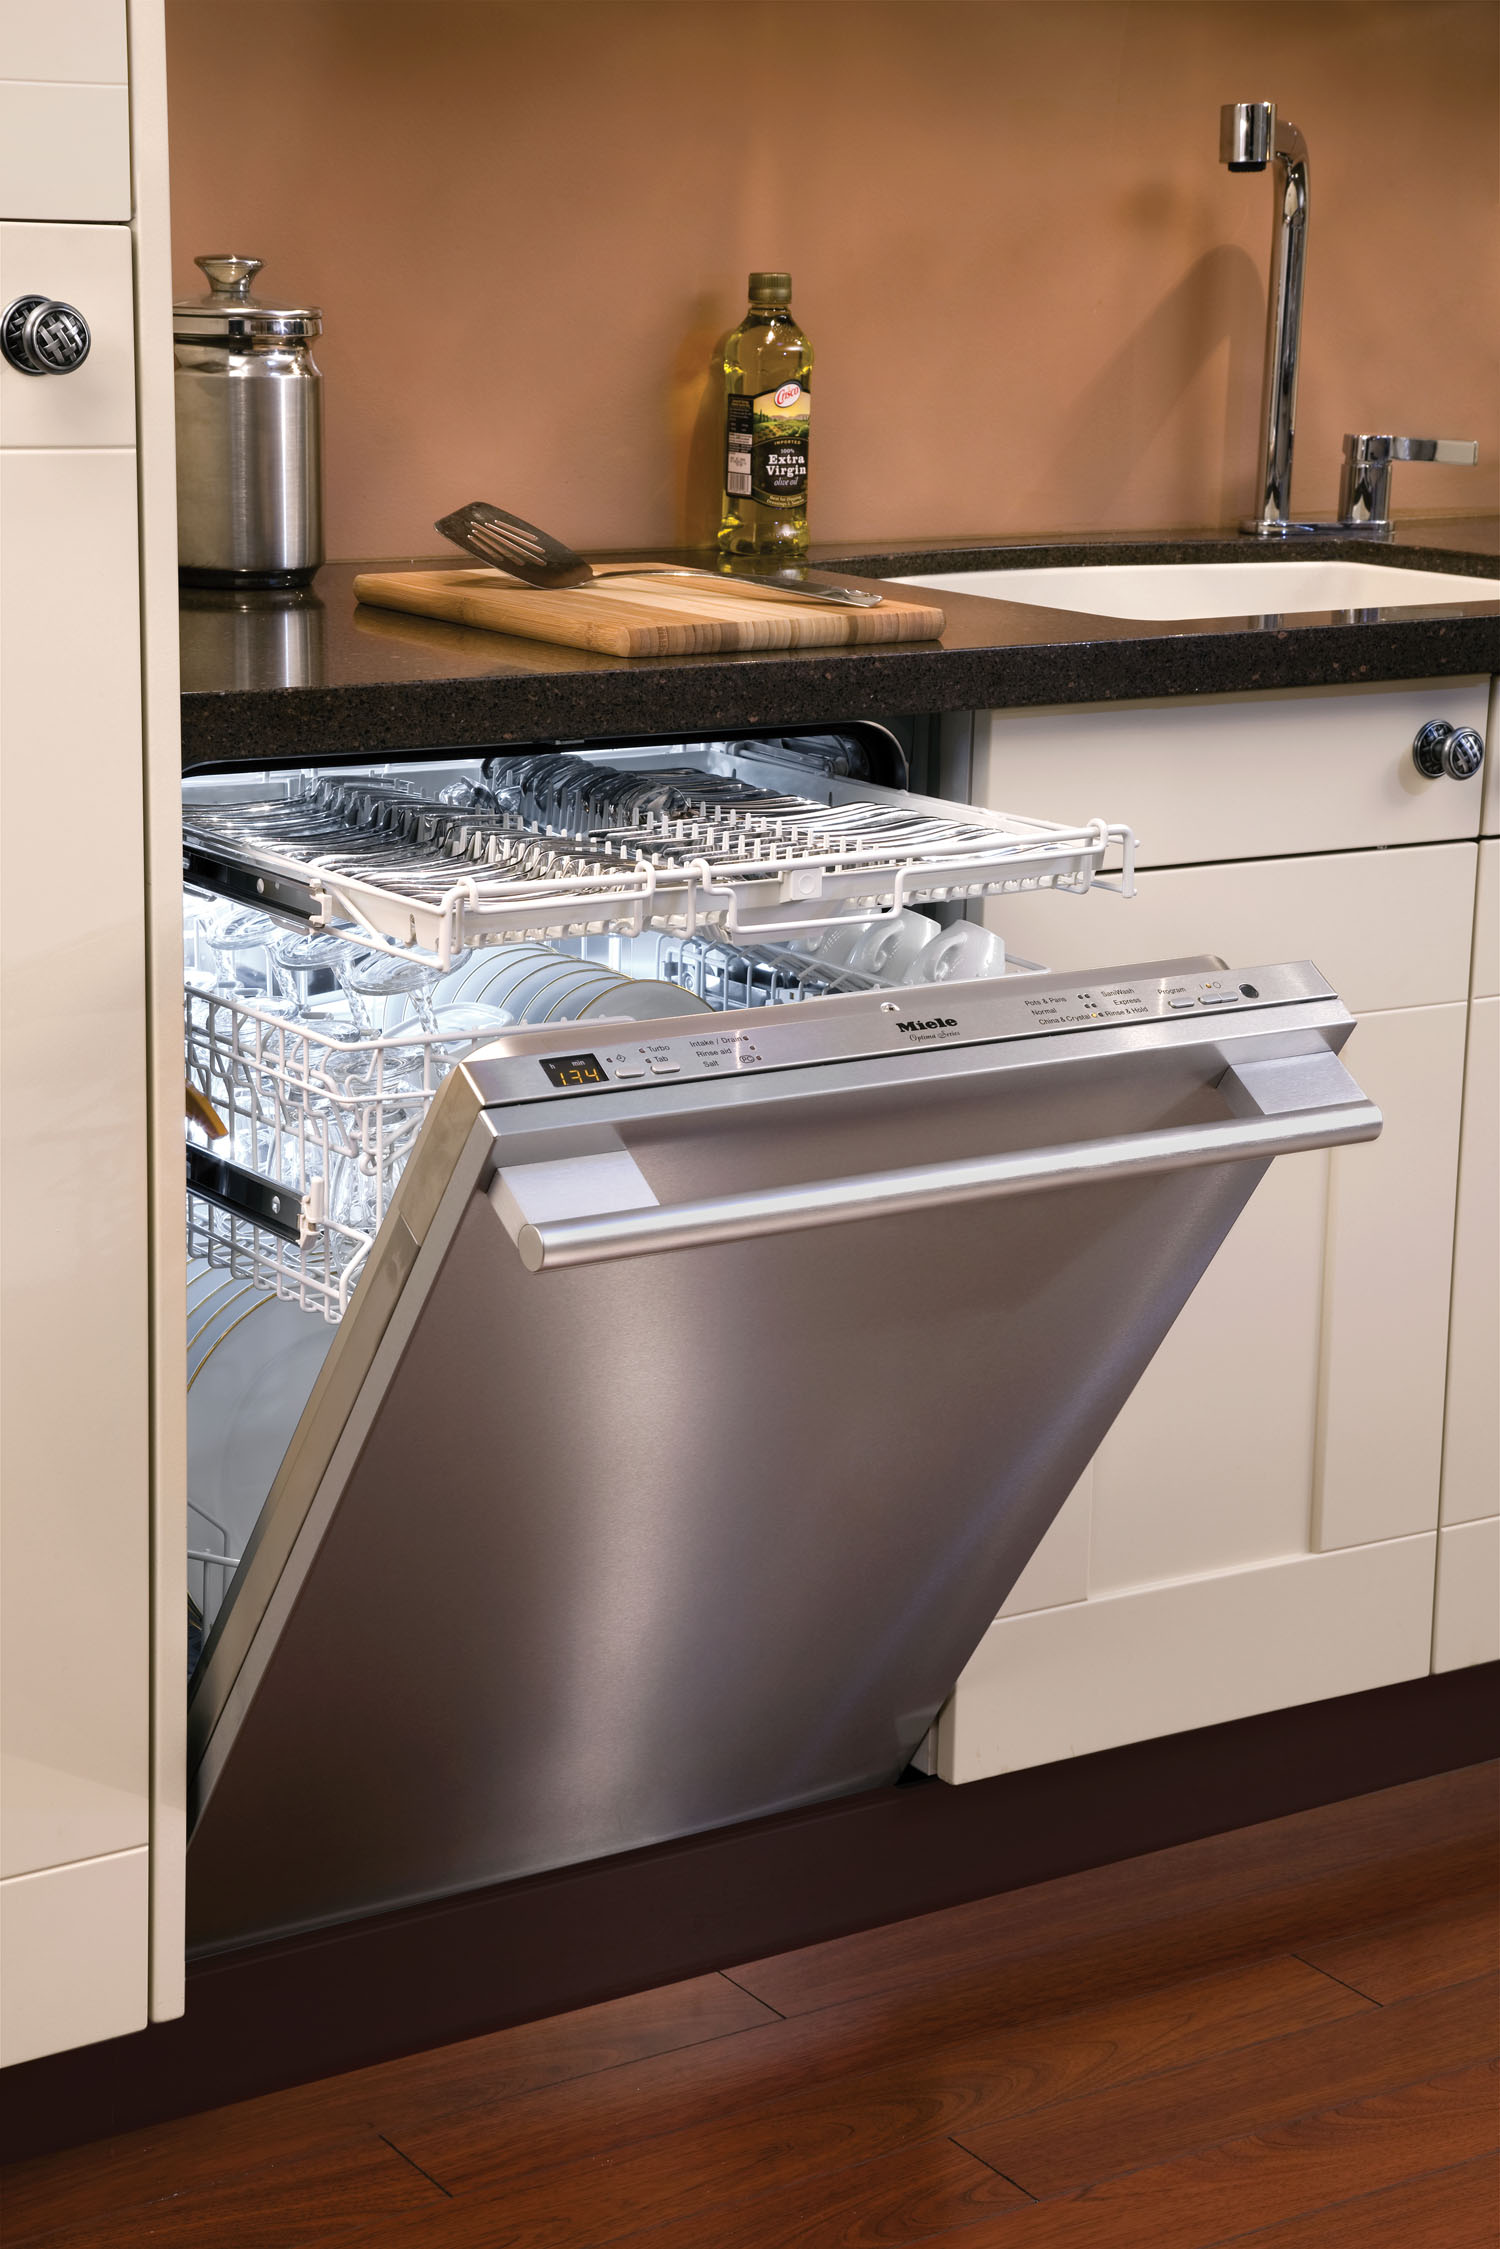 Miele: The Quietest American Dishwasher